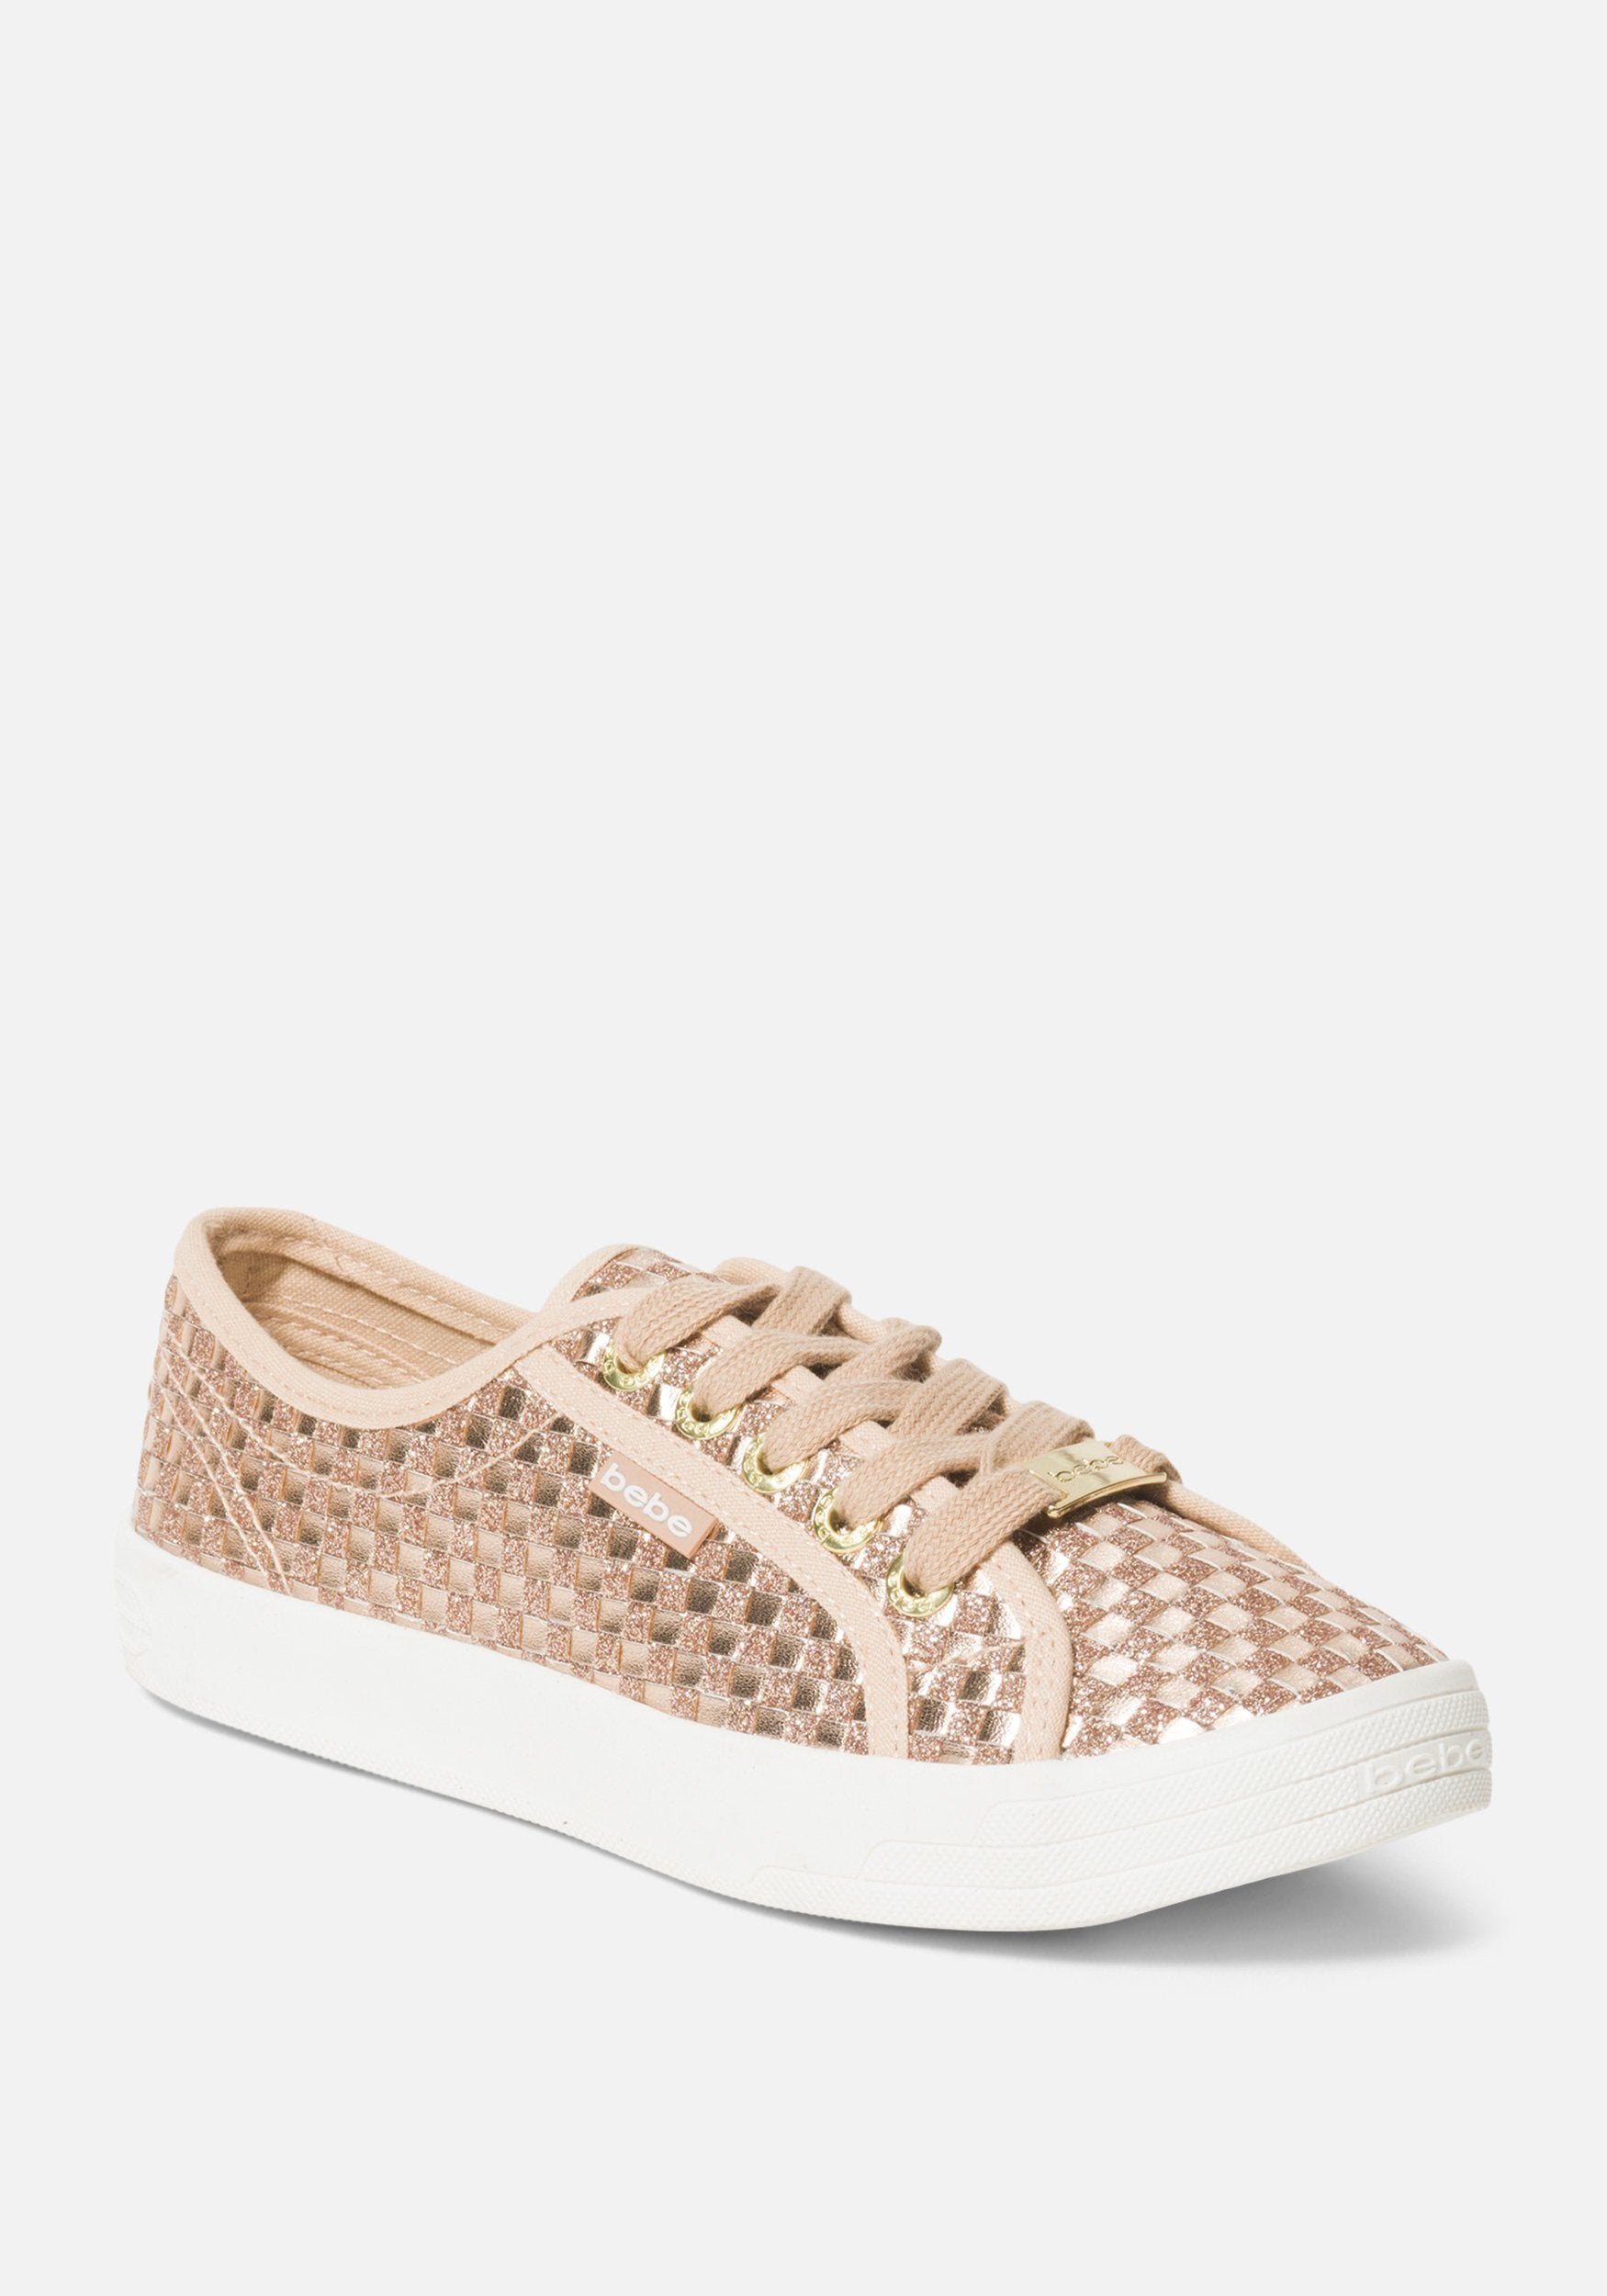 Bebe Women's Dorey Basketweave Sneakers, Size 6 in ROSE GOLD Synthetic